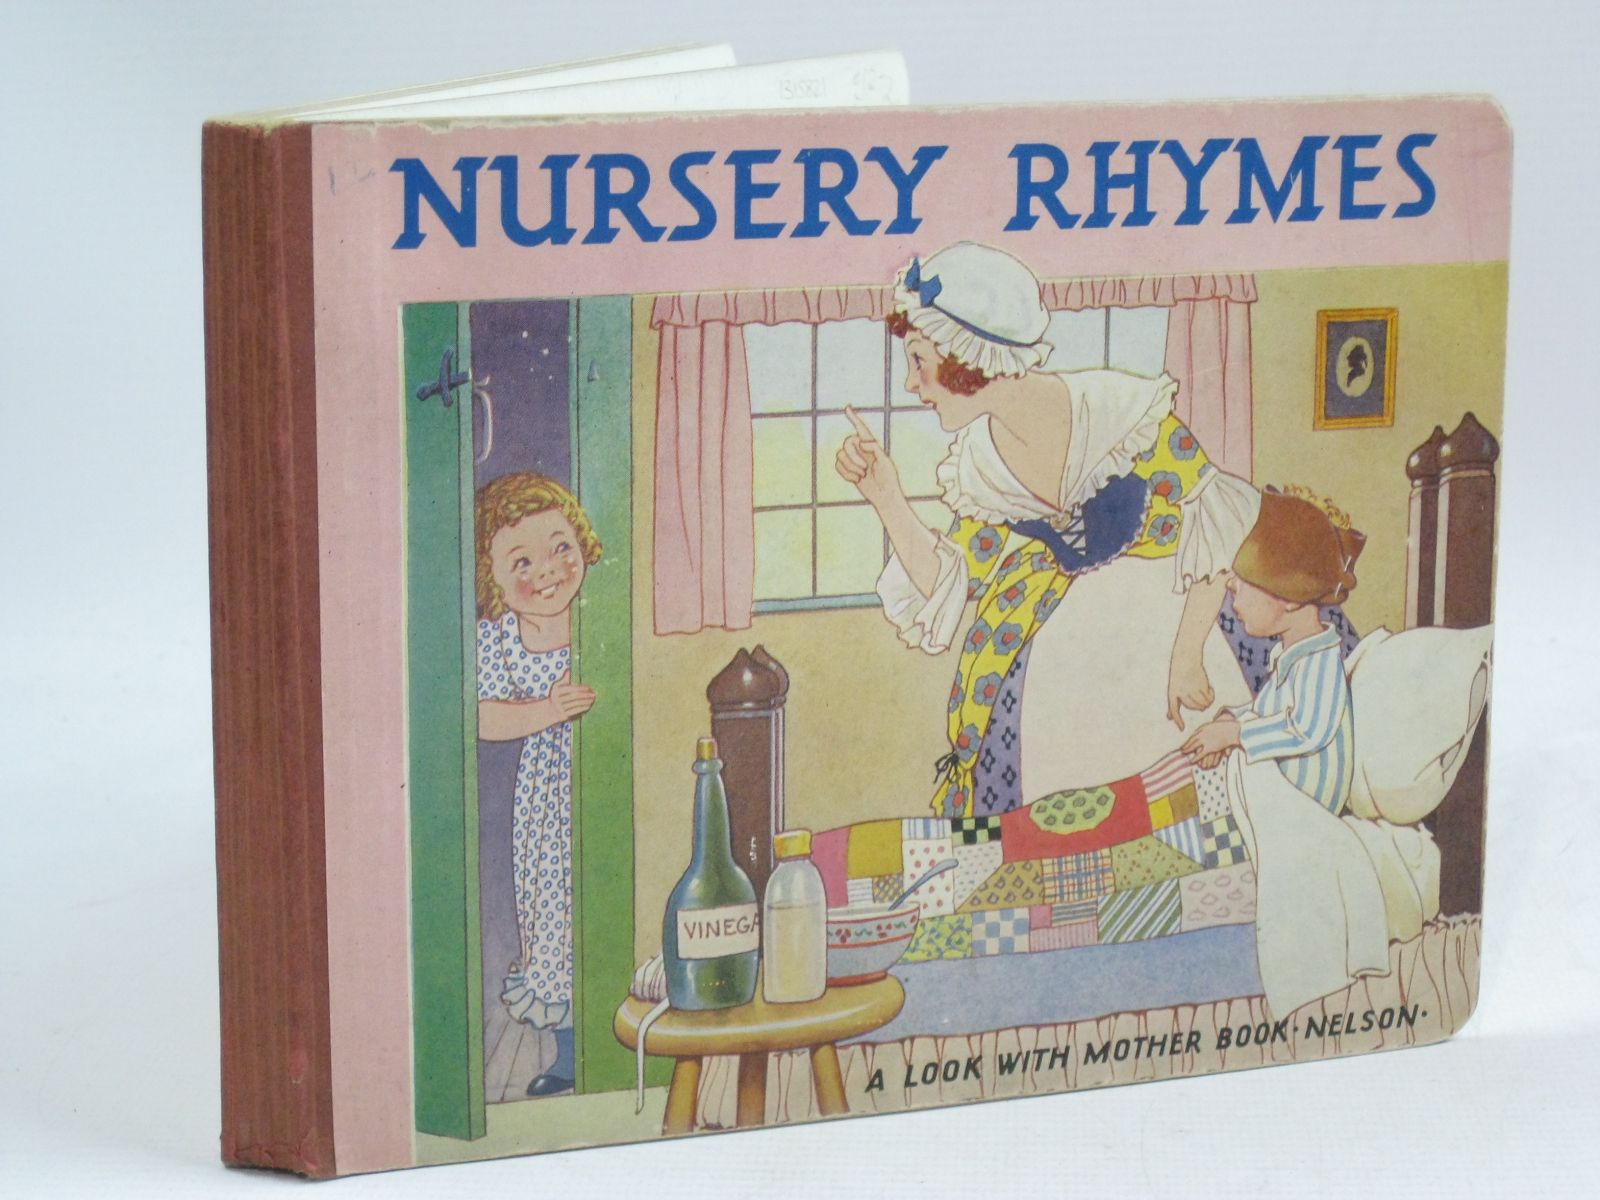 Photo of NURSERY RHYMES illustrated by Wood, Lawson published by Thomas Nelson and Sons Ltd. (STOCK CODE: 1315821)  for sale by Stella & Rose's Books